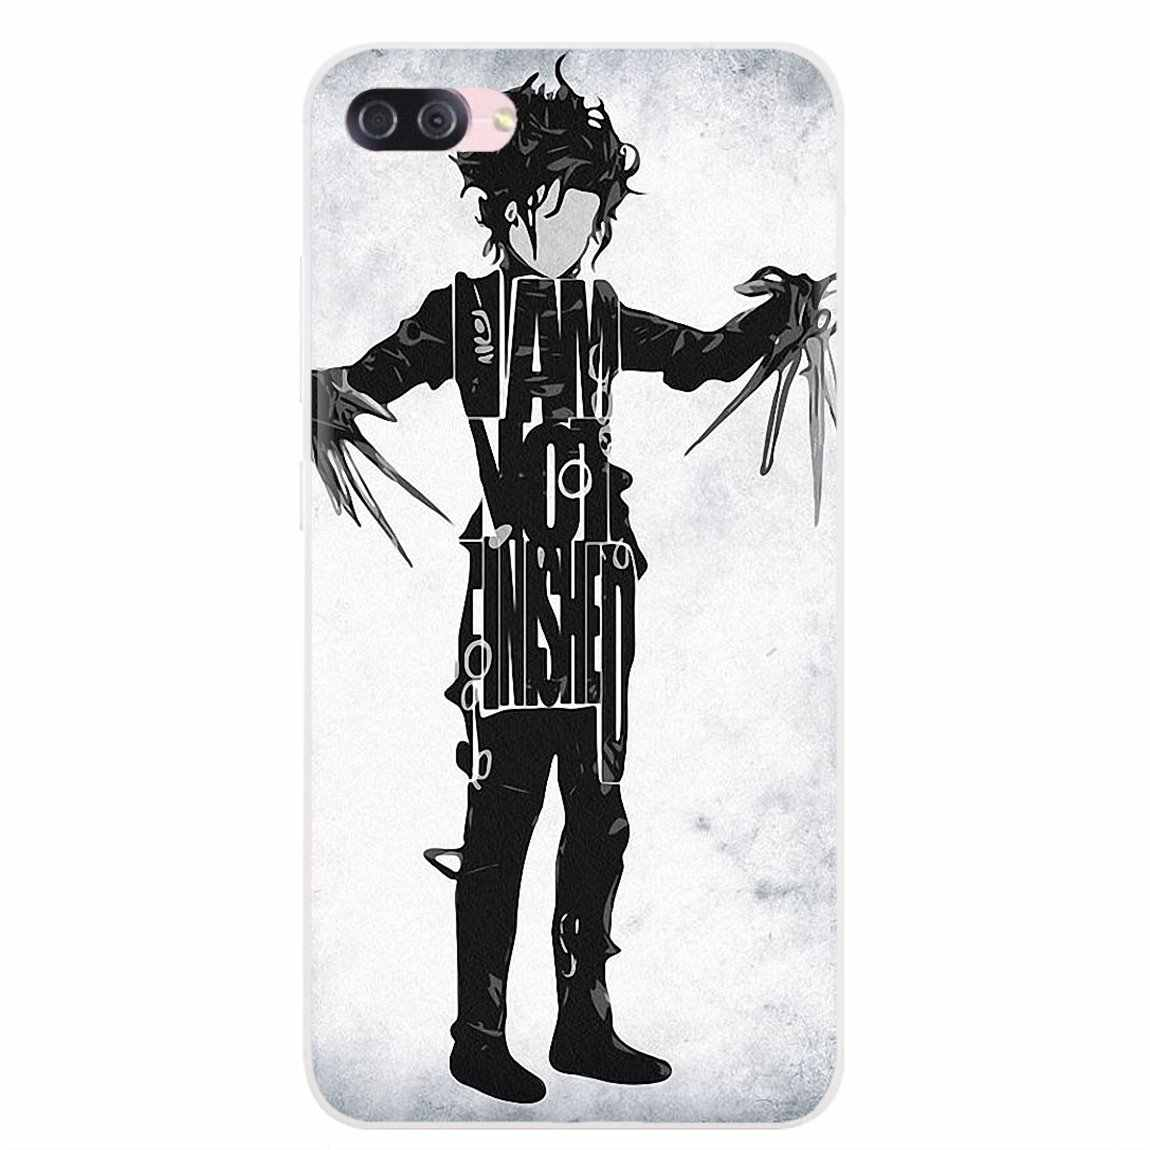 Durable Silicone Phone Case Edward Scissorhands Movie For Samsung Galaxy A10 A30 A40 A50 A60 A70 S6 Active Note 10 Plus Edge M30